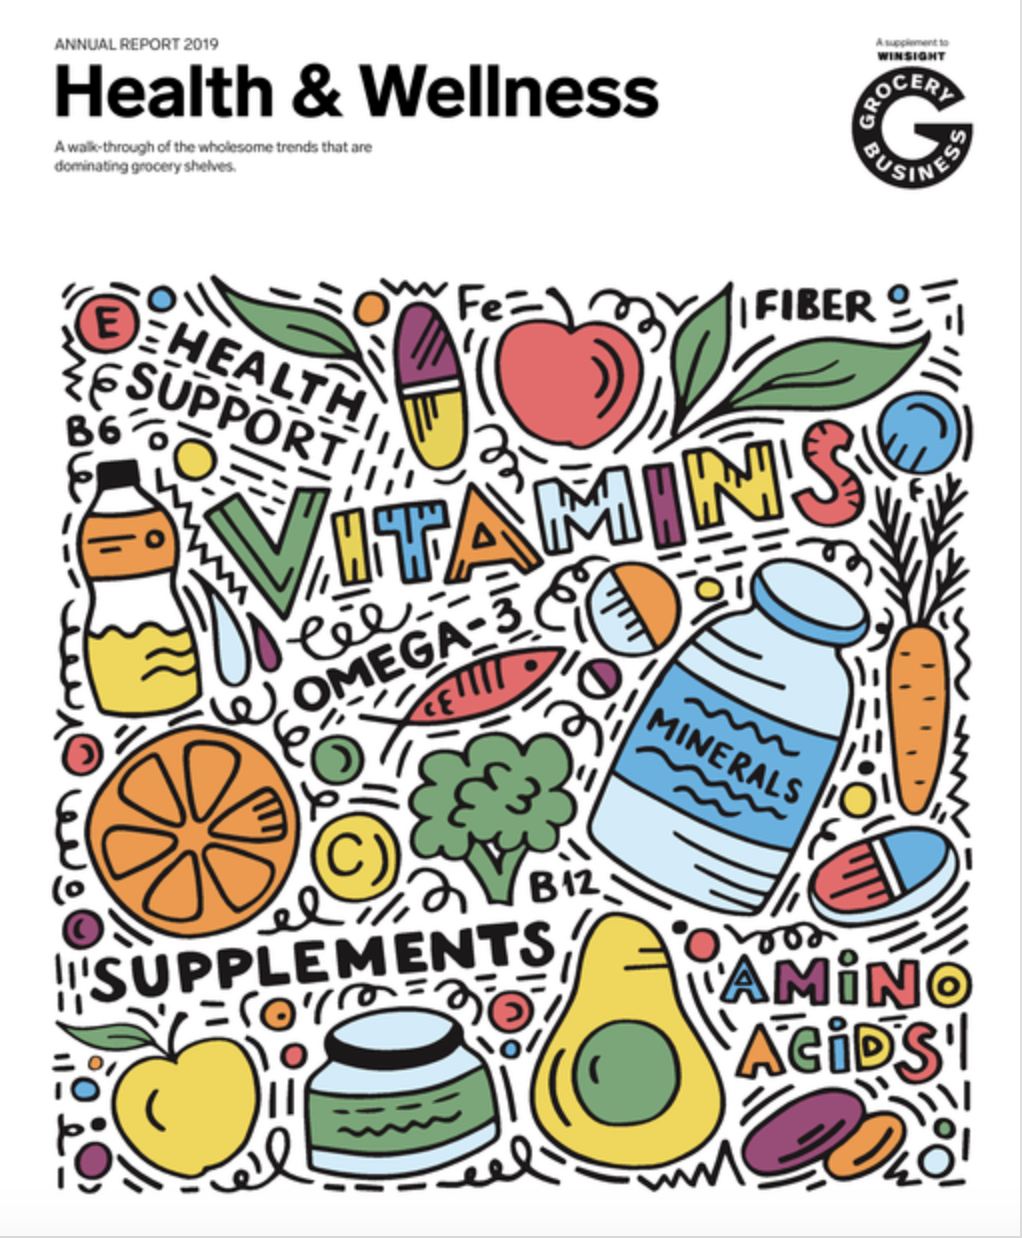 Winsight Grocery Business Magazine 2019 Annual Report: Health & Wellness Issue